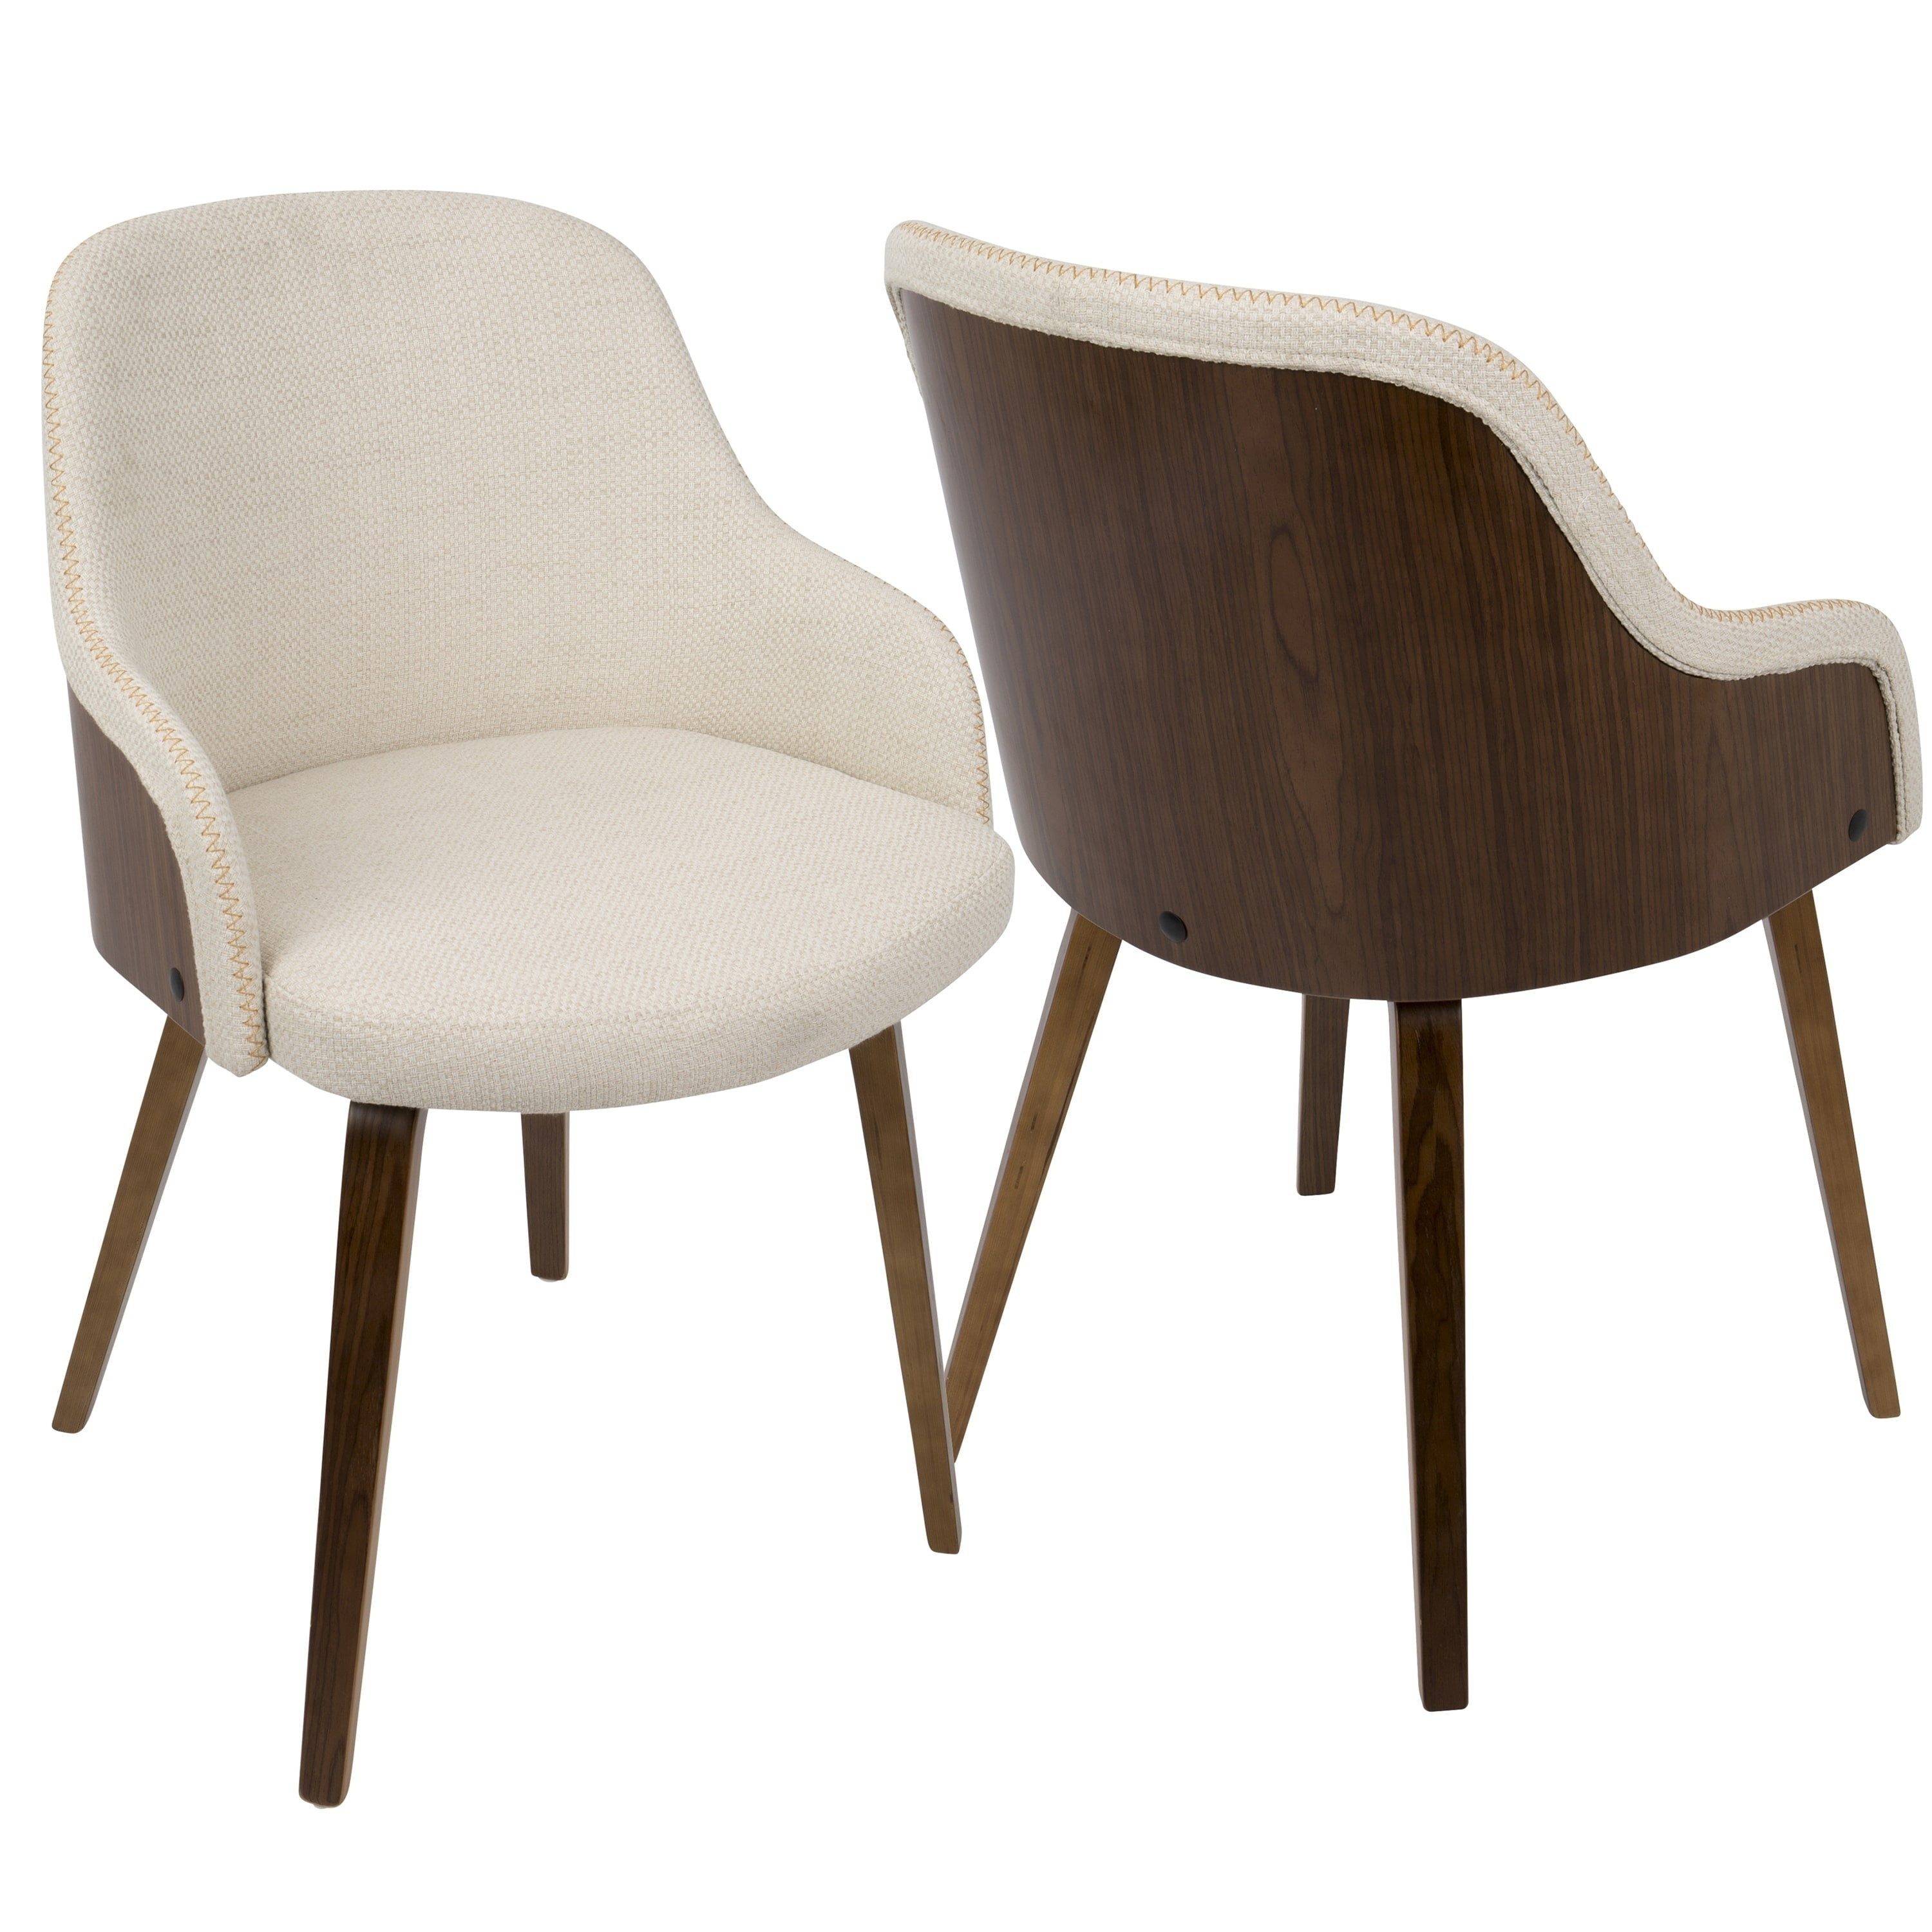 Modern Unique Accent Chairs.Carson Carrington Duvnas Modern Upholstered Dining Accent Chair